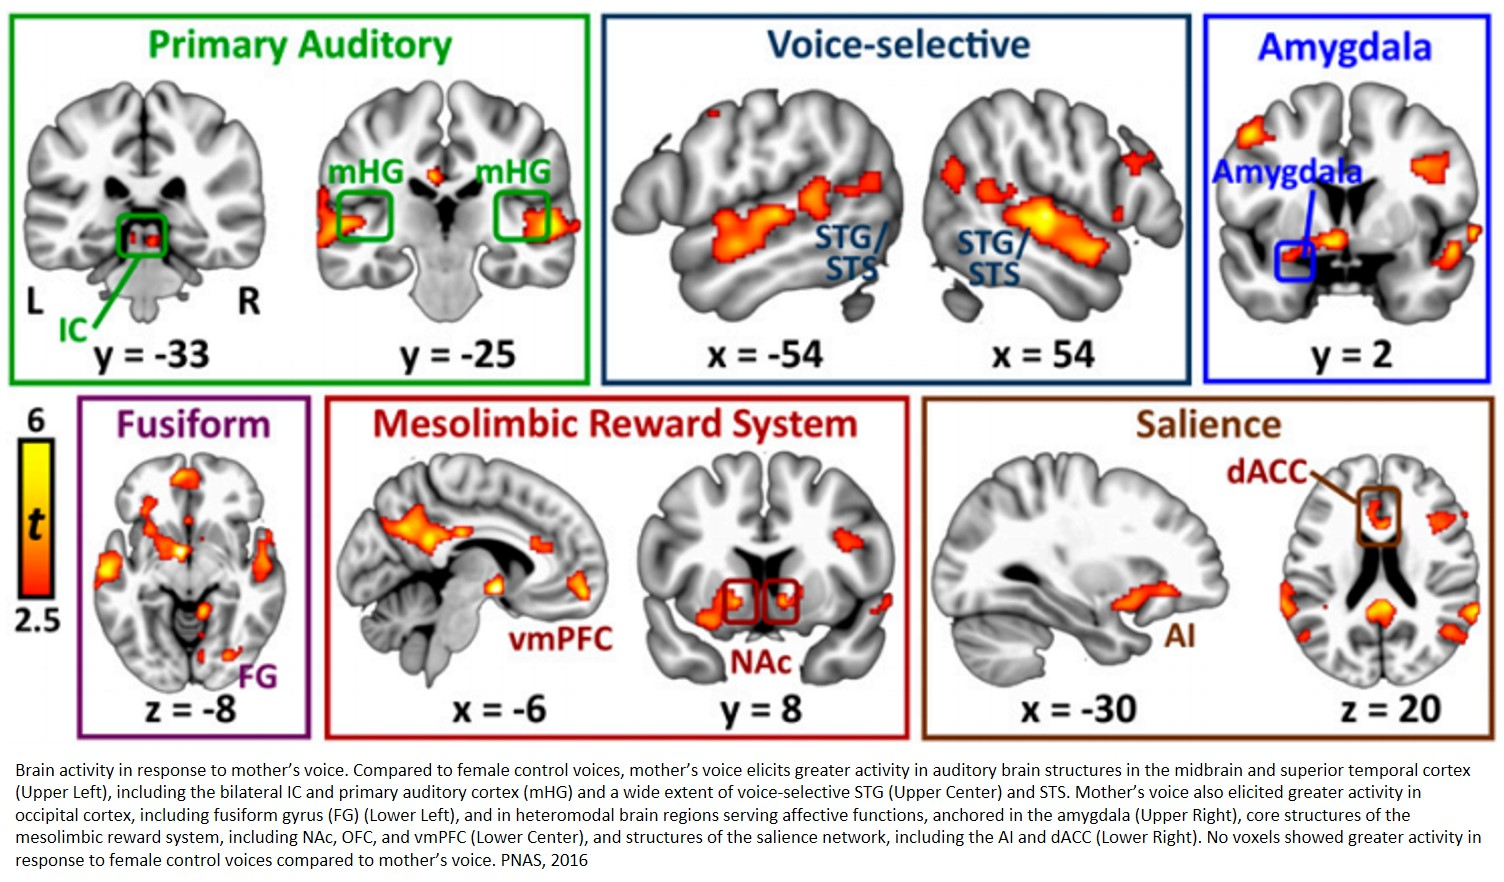 Mom's voice activates many different regions in children's brains